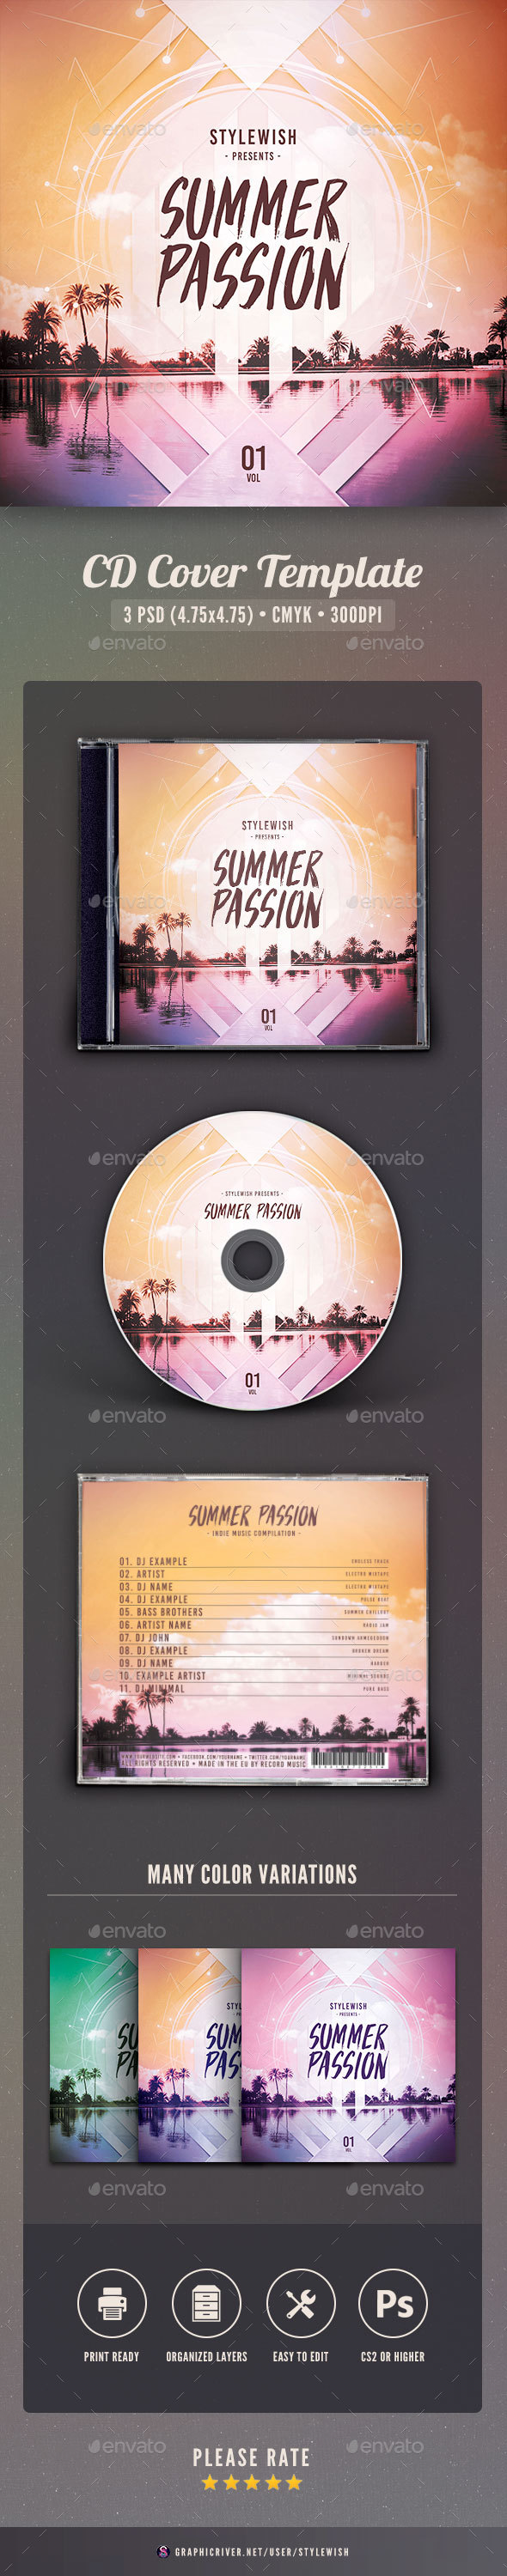 Summer Passion CD  Cover Artwork - CD & DVD Artwork Print Templates